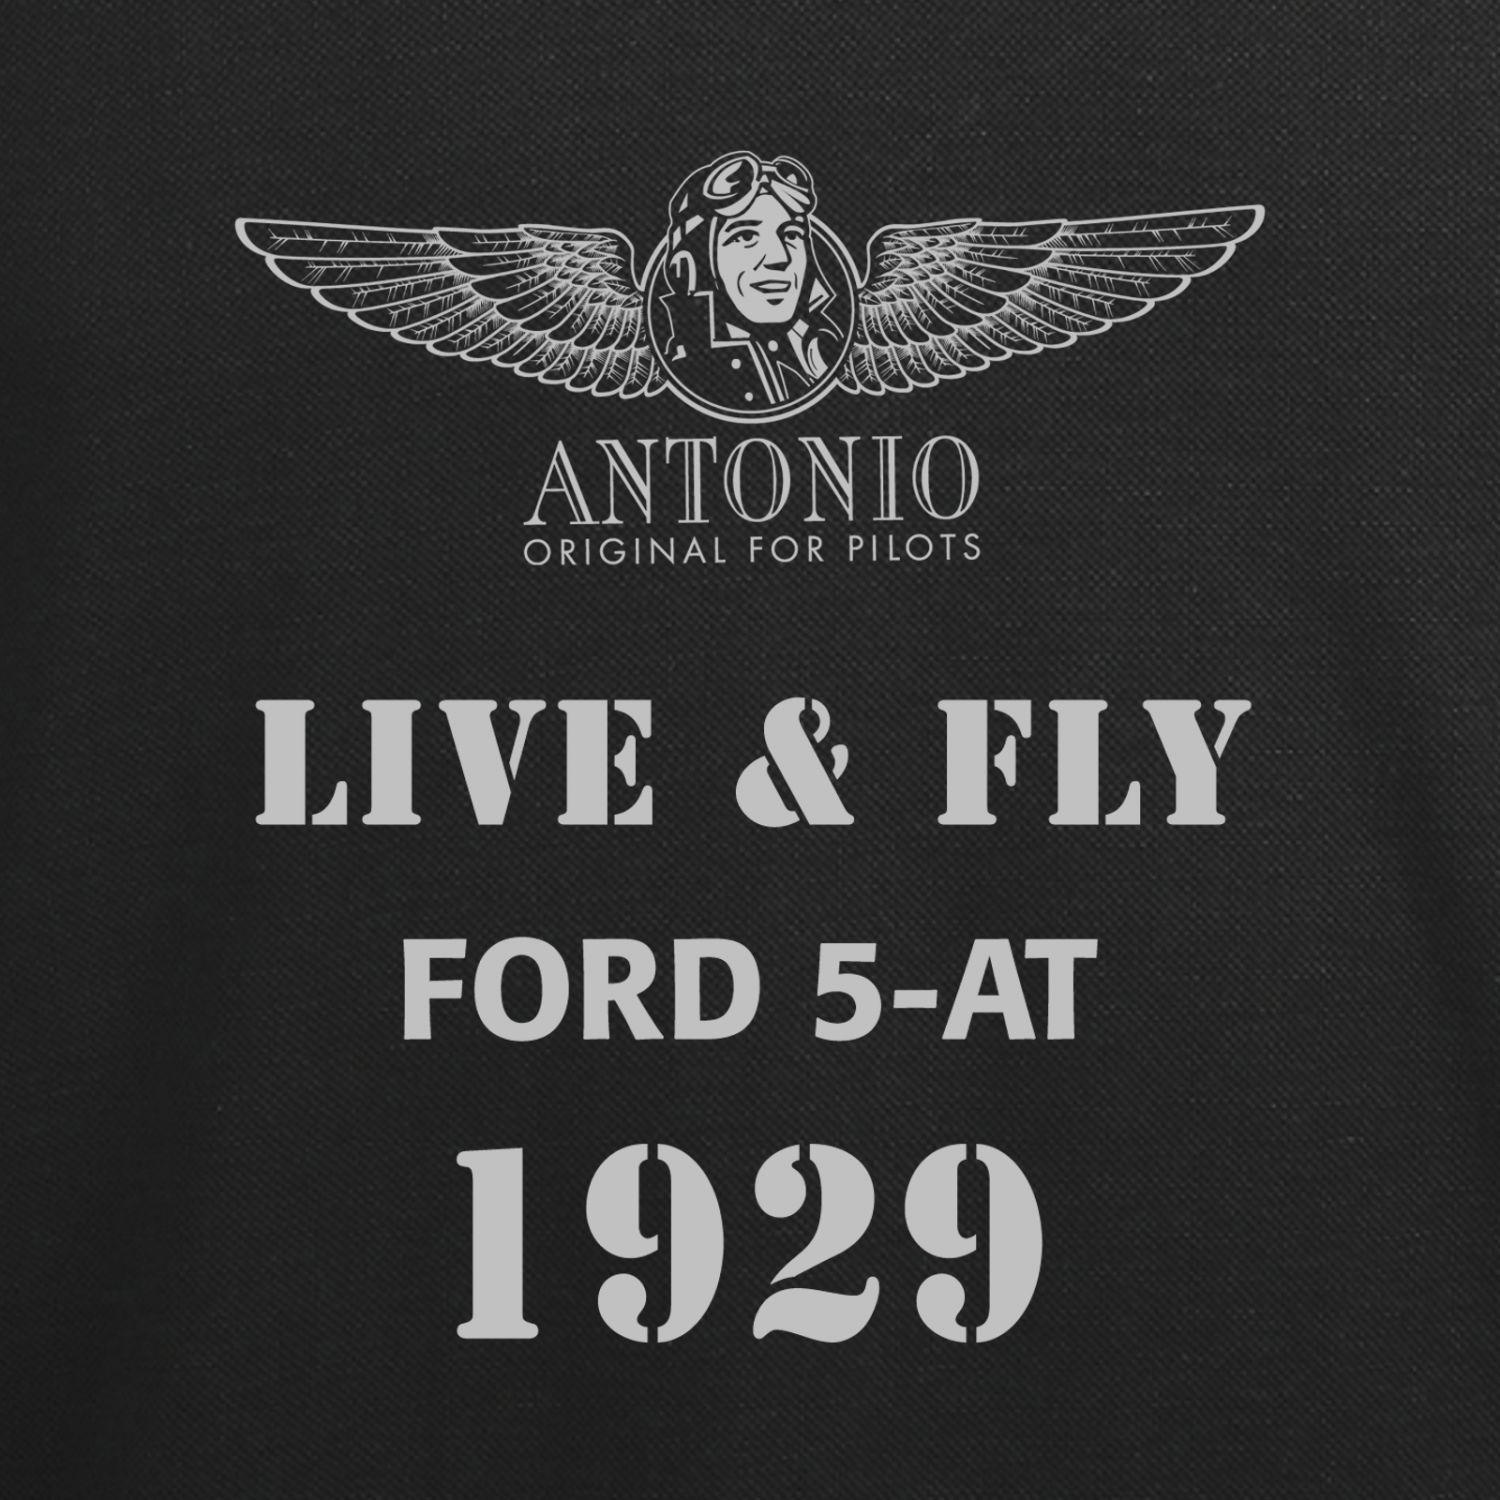 Antonio - Polohemd Ford 5-AT